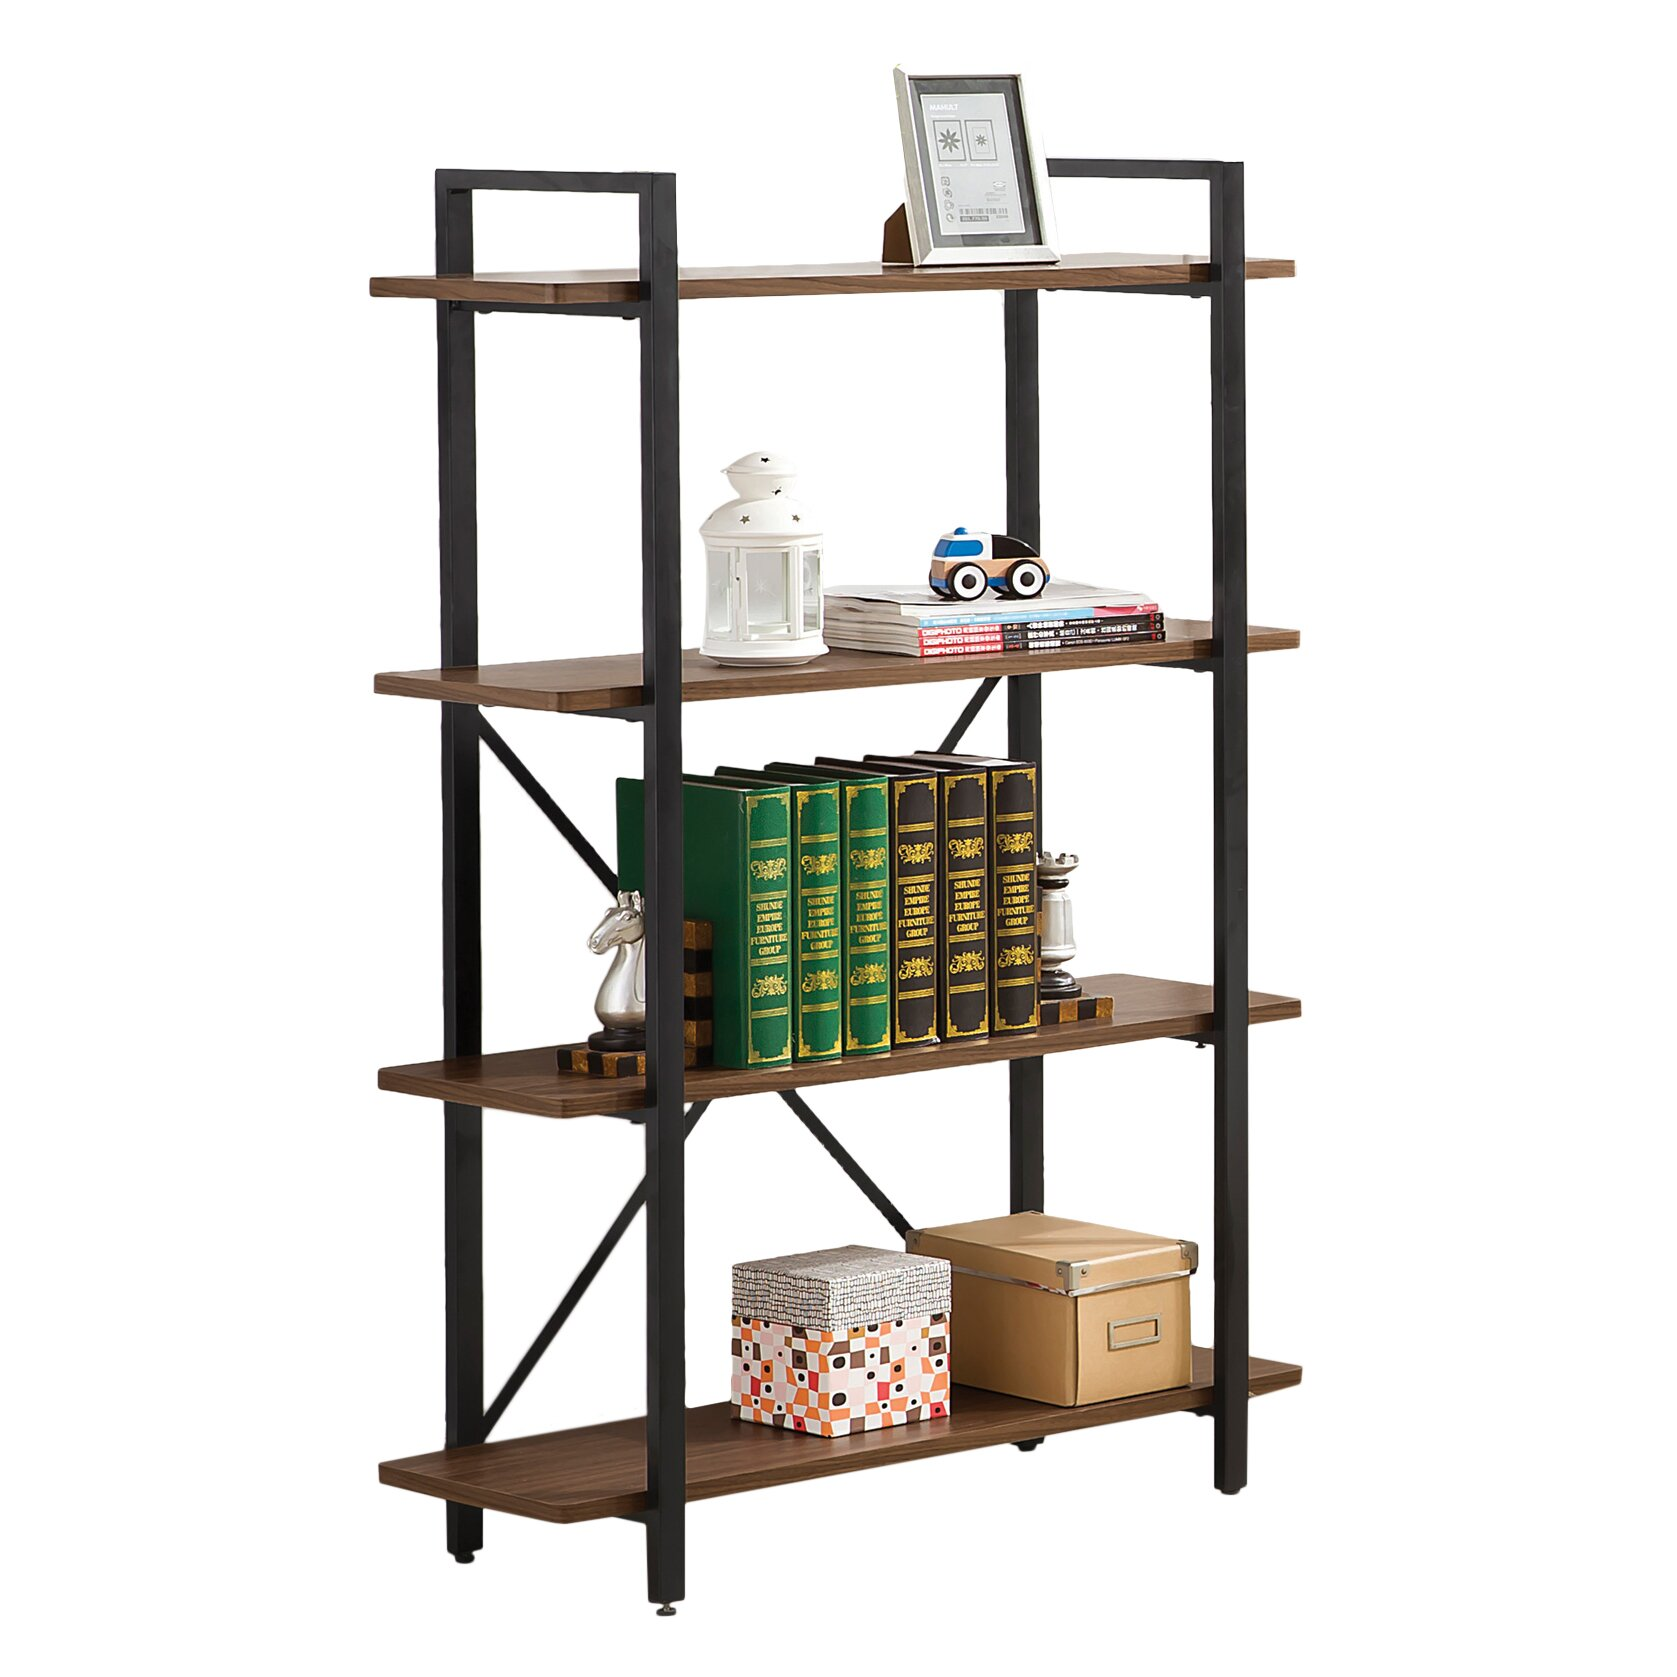 wildon home charlie 52 etagere bookcase reviews wayfair. Black Bedroom Furniture Sets. Home Design Ideas